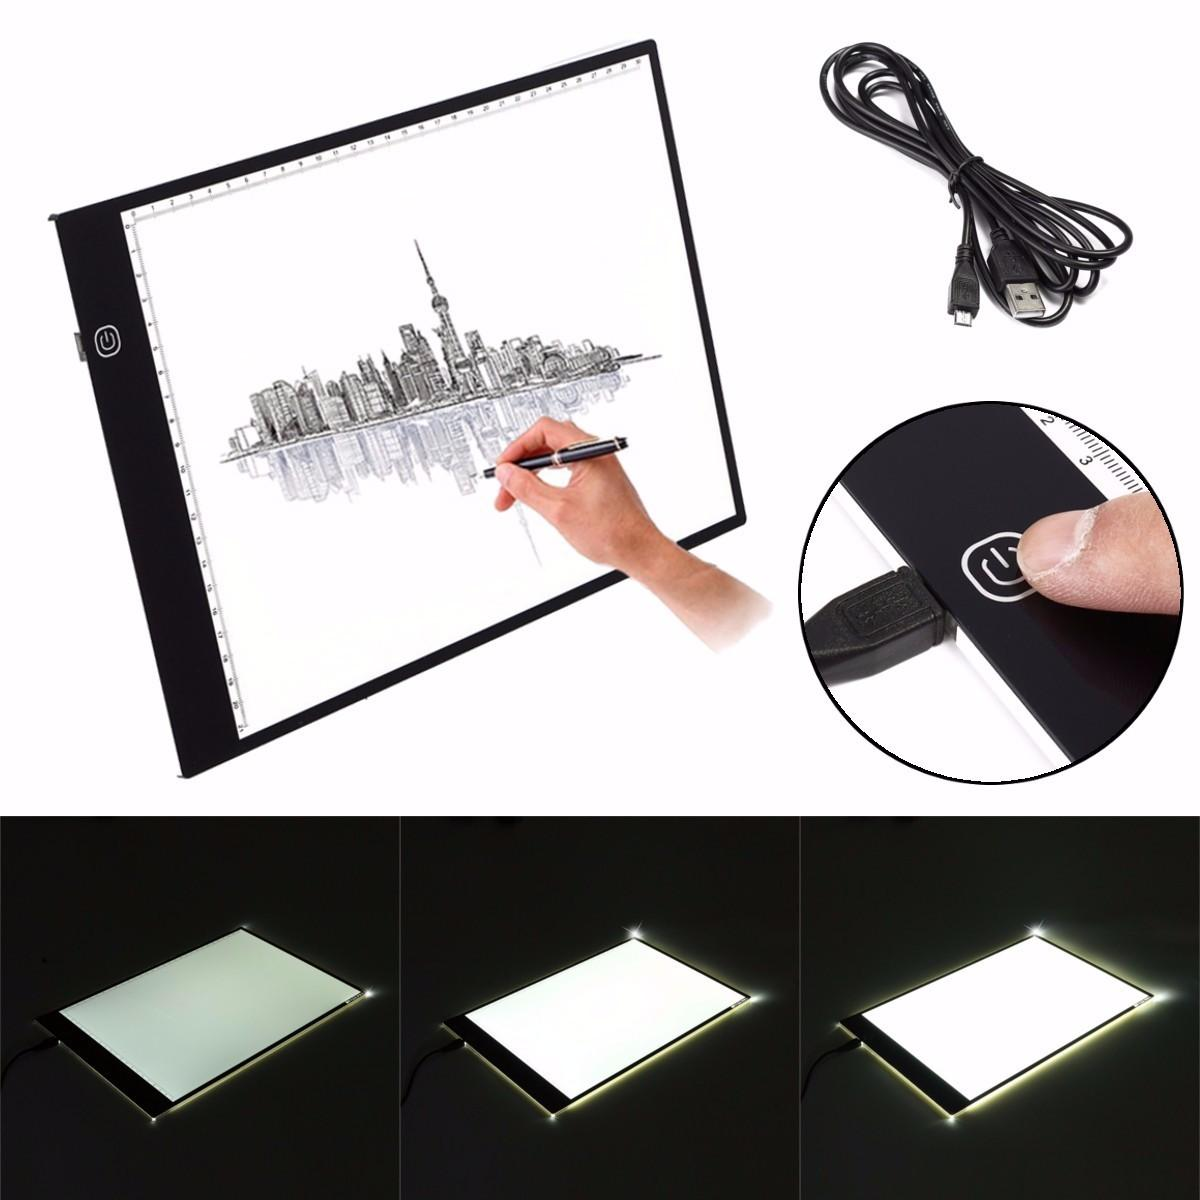 M.Way Ultra fino A2 A3 LED Copia con cable USB Lámpara de dibujo de brillo ajustable Copy board